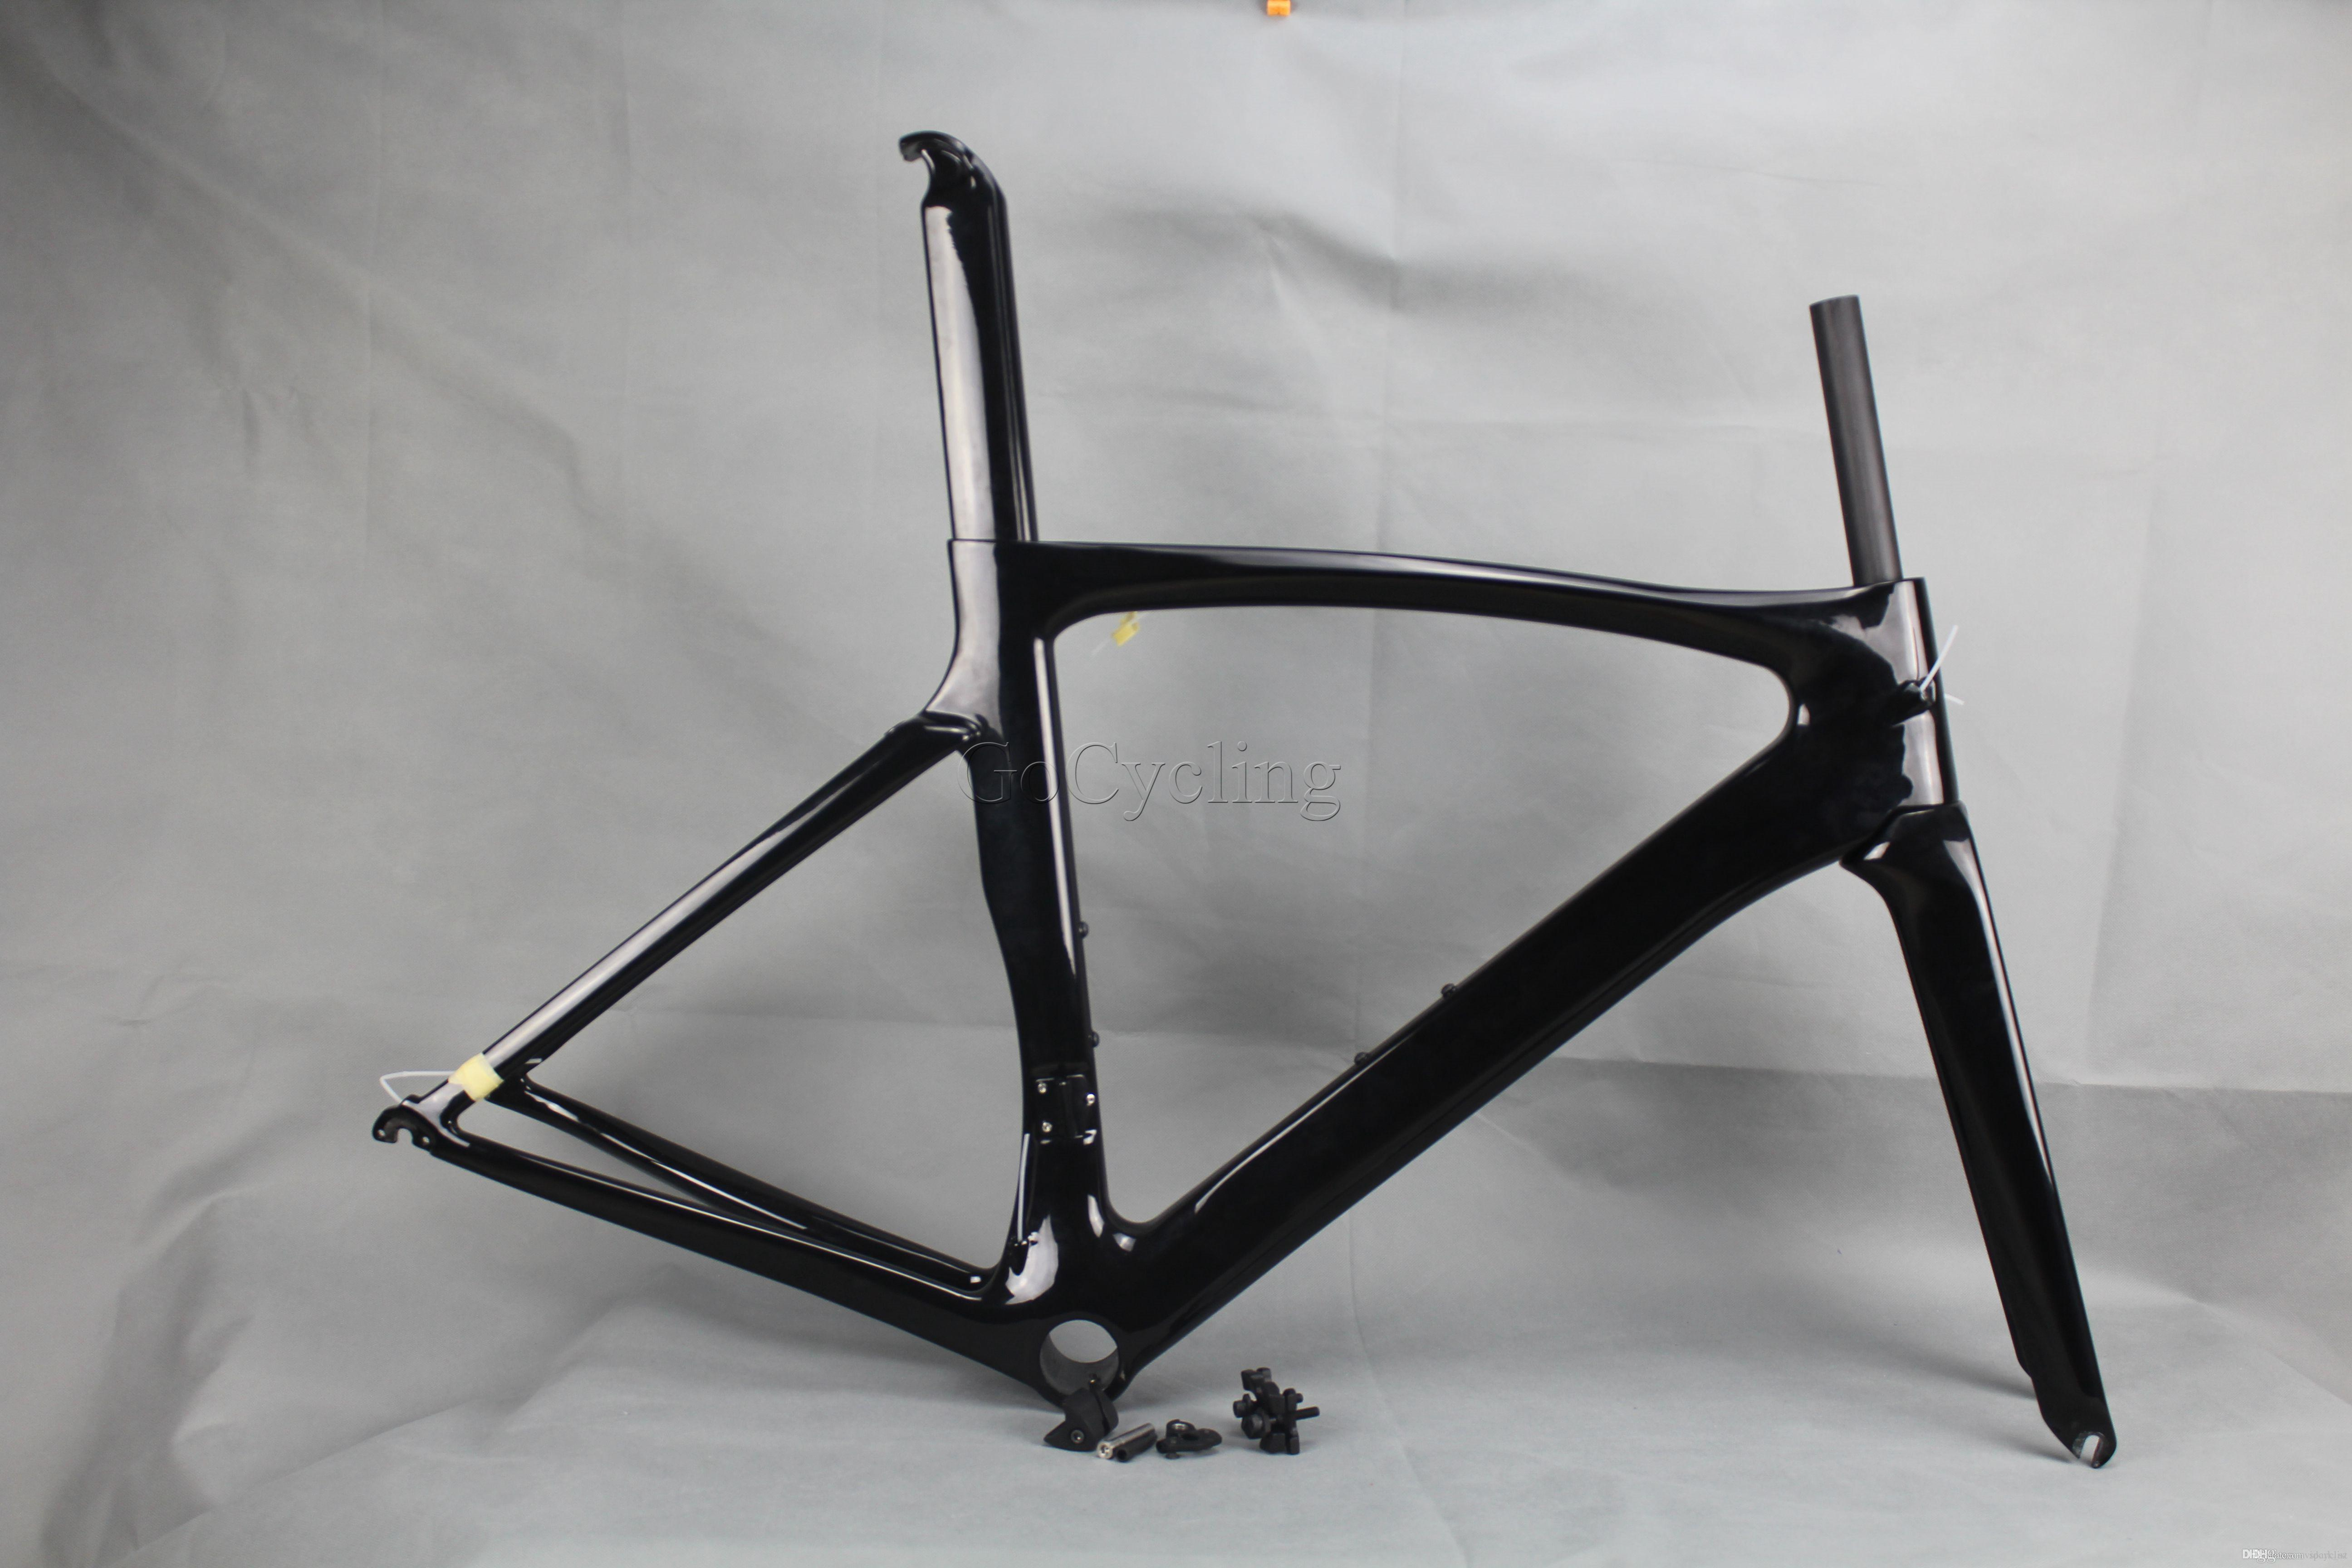 Carbon road bike frames Black glossy racing carbon bicycle frame cycling frameset No decals clear coat BB shell PF30